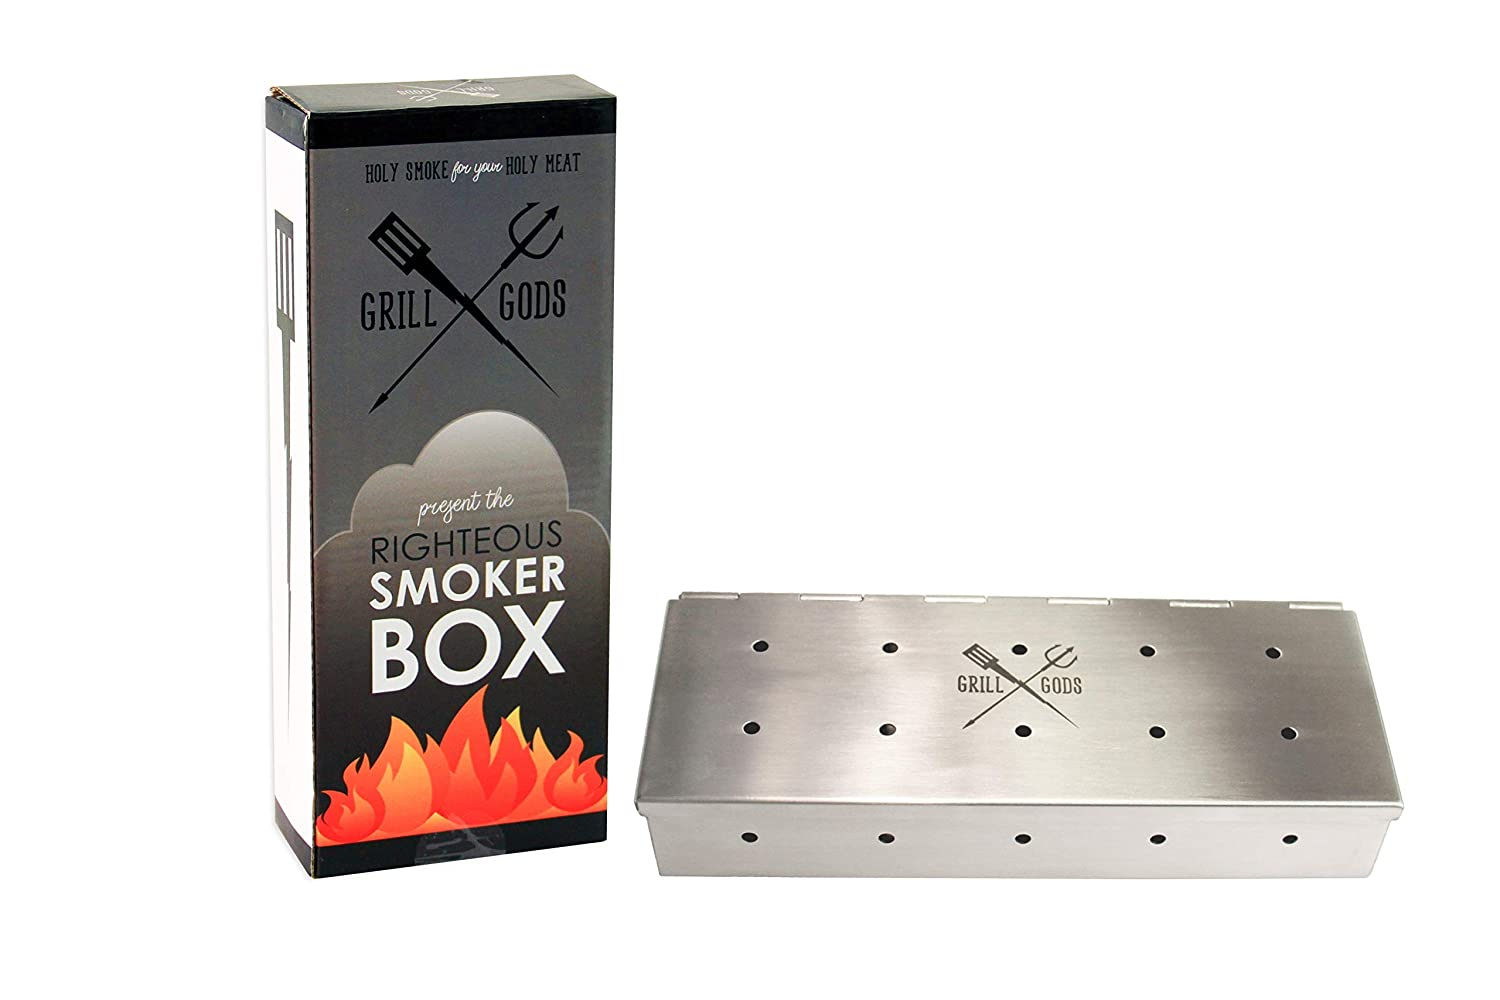 Grill Gods Smoker Box: Grilling Accessory for Charcoal or Gas Grill, Thick Stainless Steel Smoker, Durable Hinges on Smoker Box, Adds Delicious Smoker Flavor.